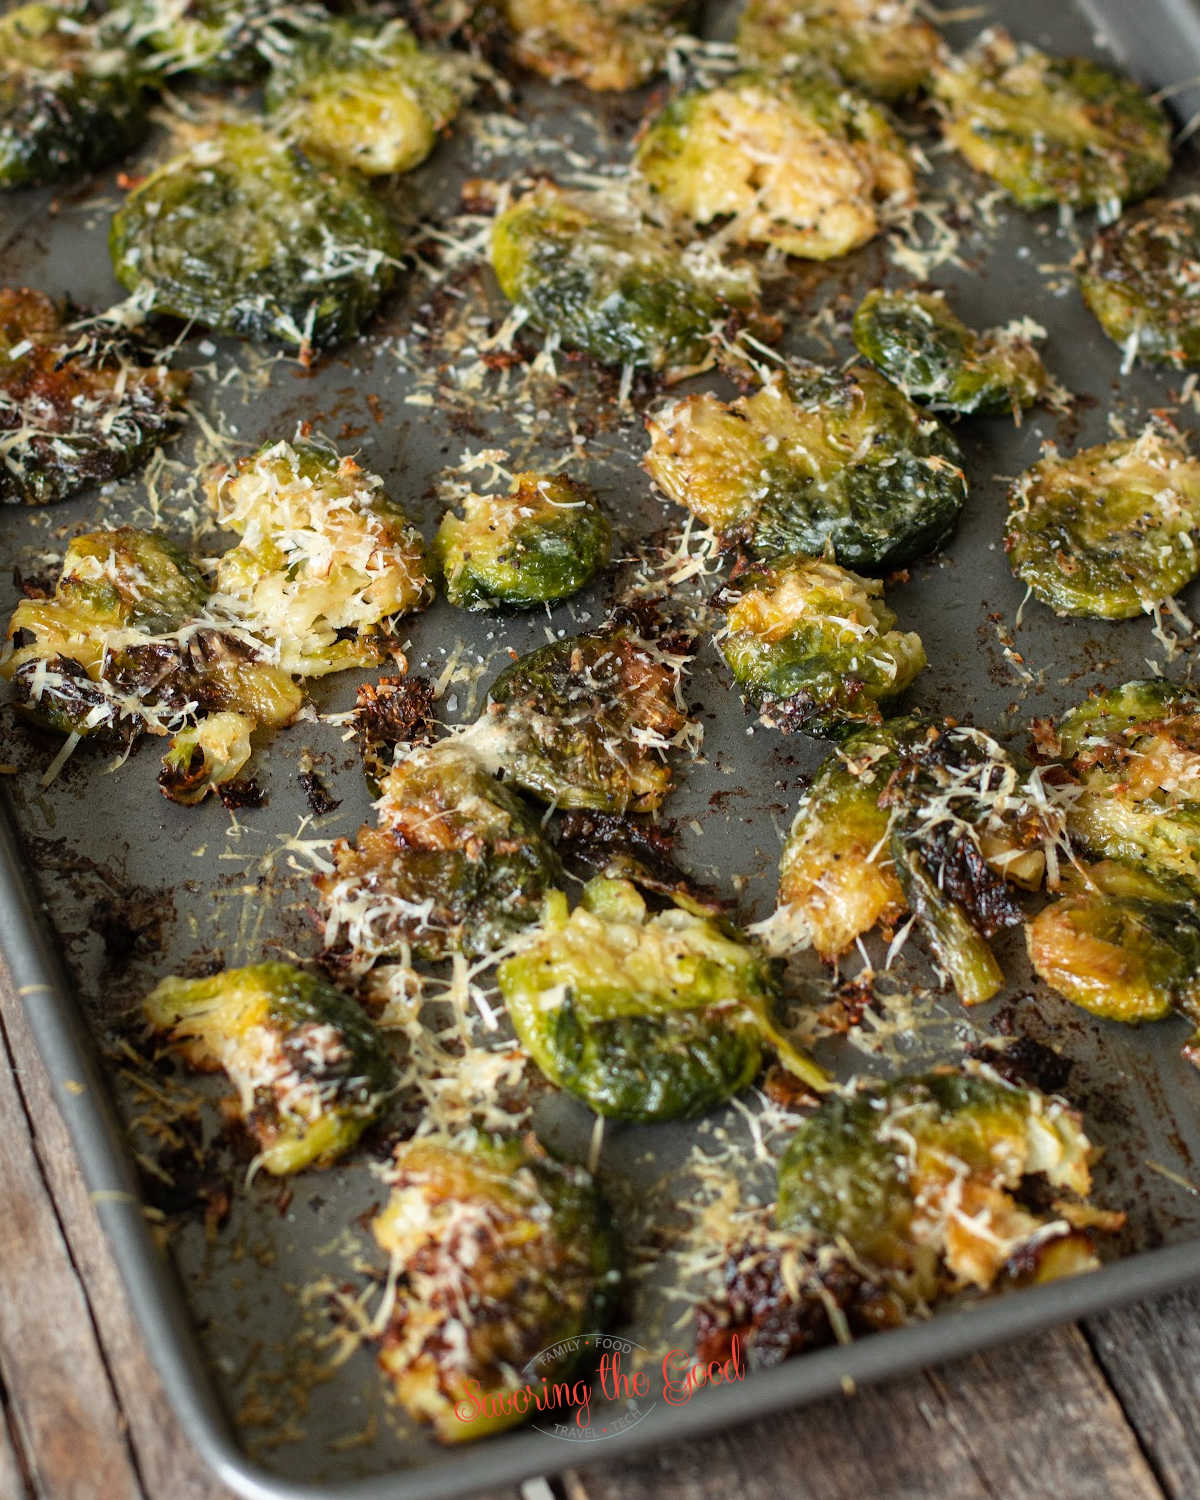 Smashed Brussel Sprouts on a baking sheet